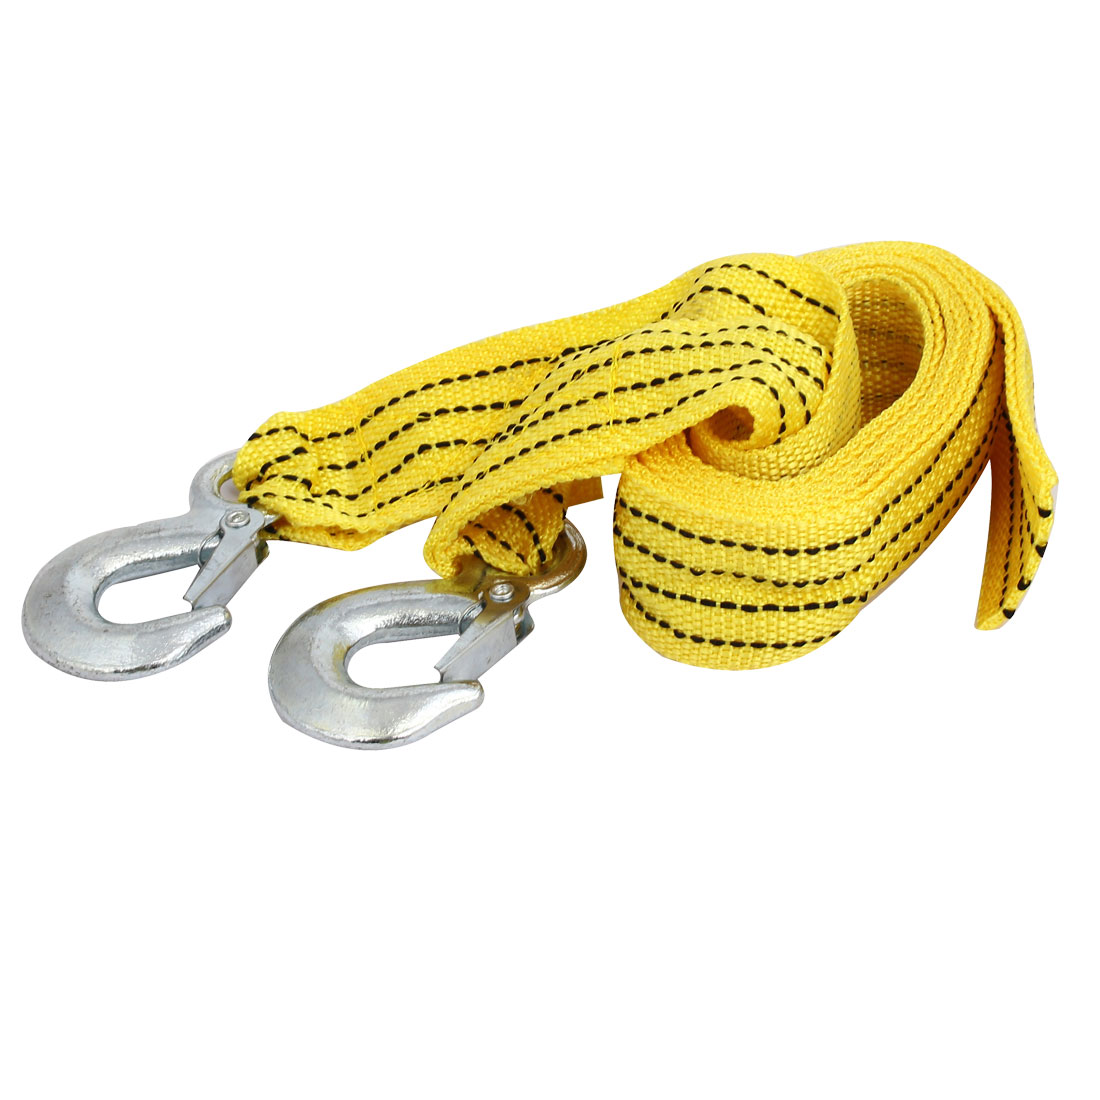 3 Meter 3 Ton Car Road Emergency Tow Cable Towing Pull Strap Rope Yellow